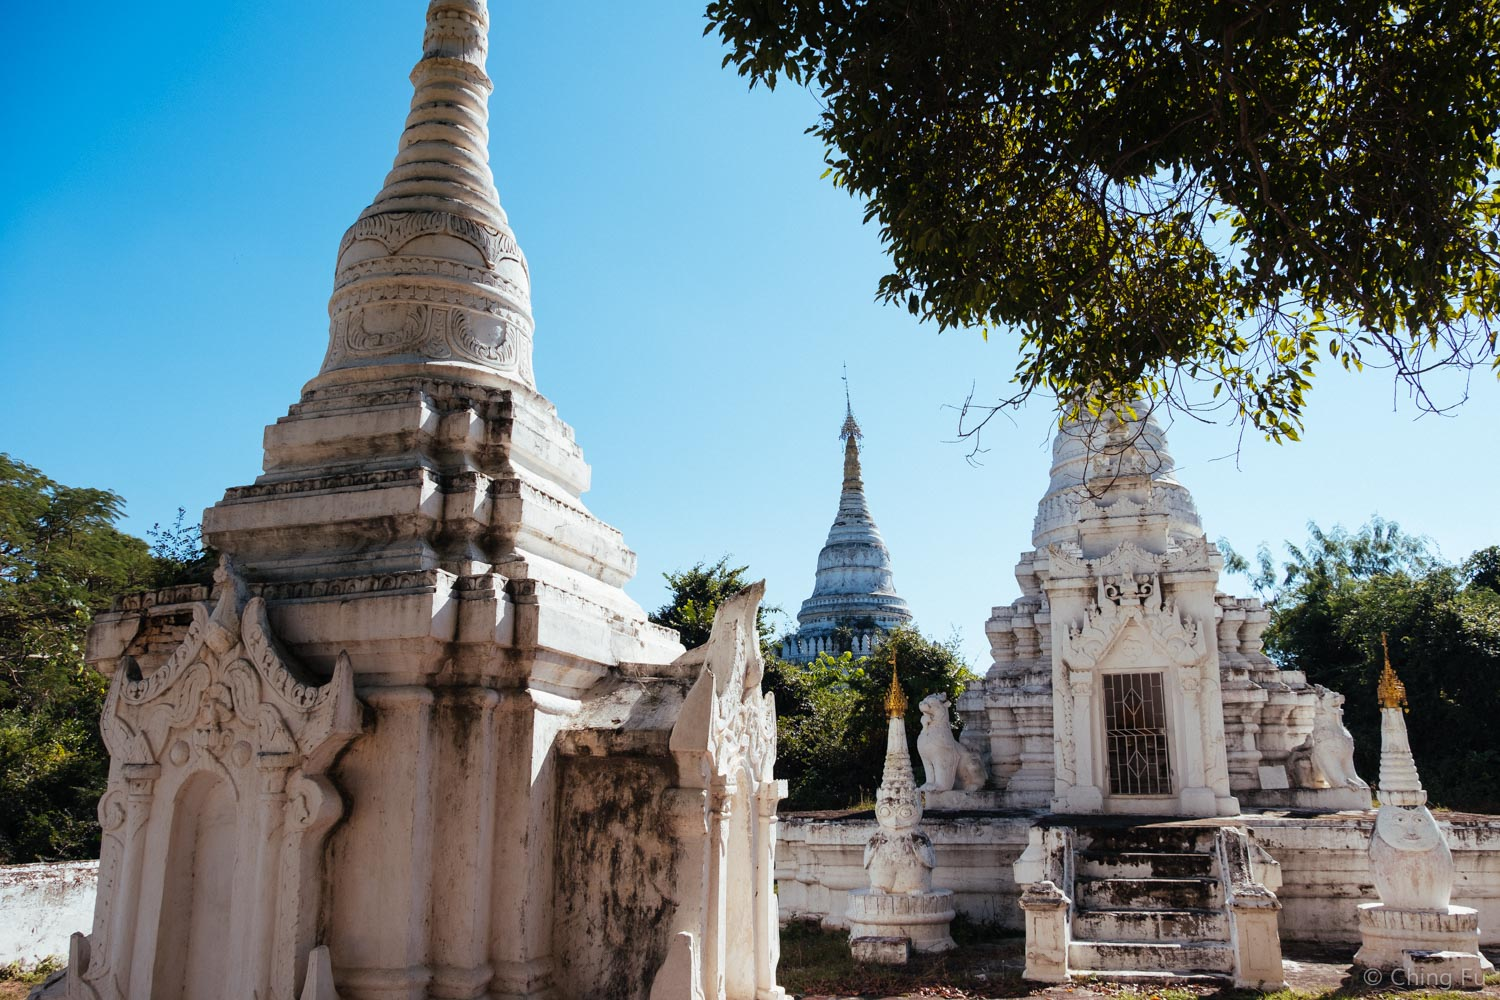 A group of pagodas and stupas we came across in Inwa, Myanmar.